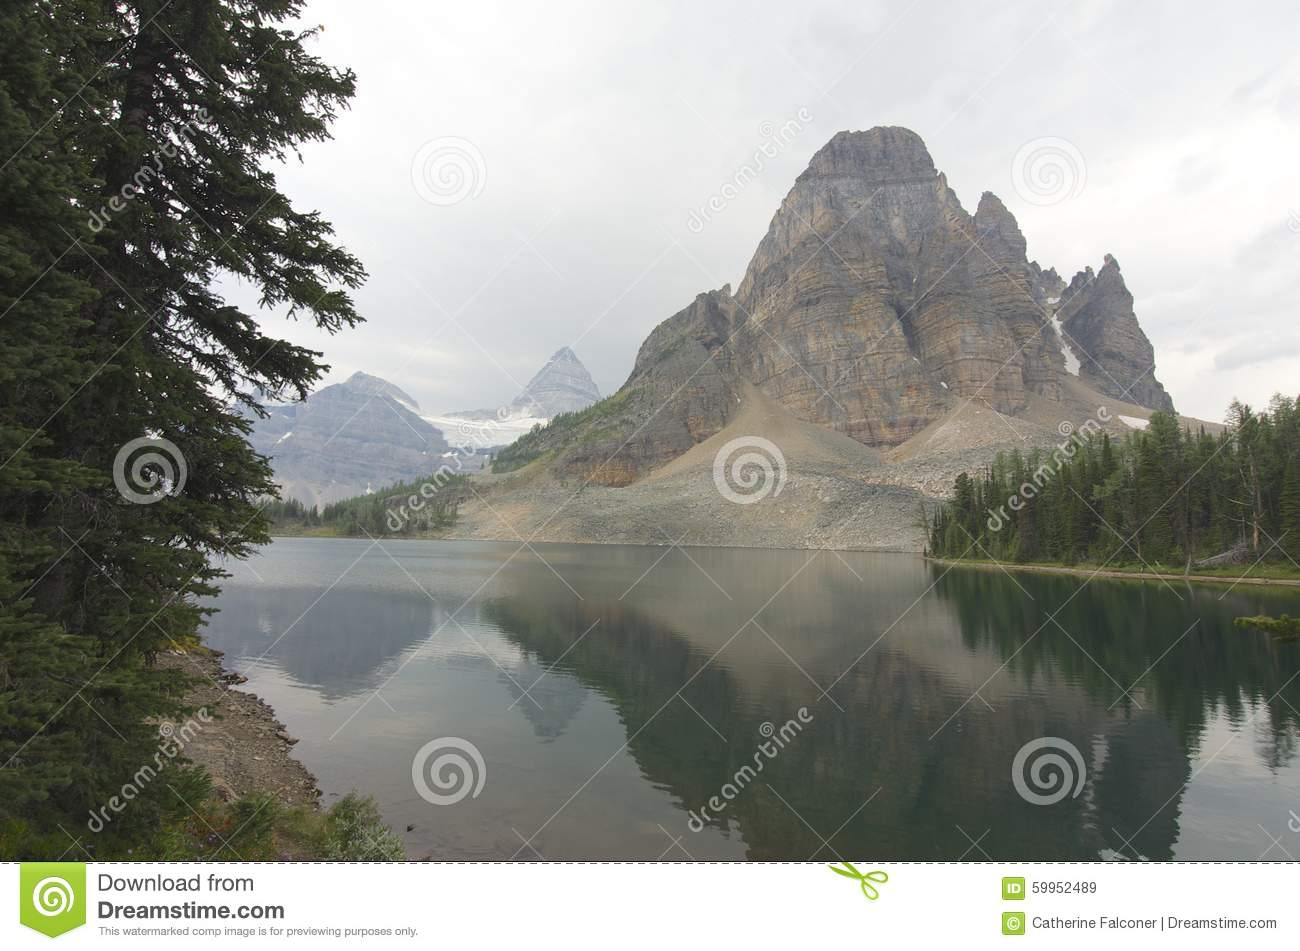 Assiniboine Mountain clipart #11, Download drawings